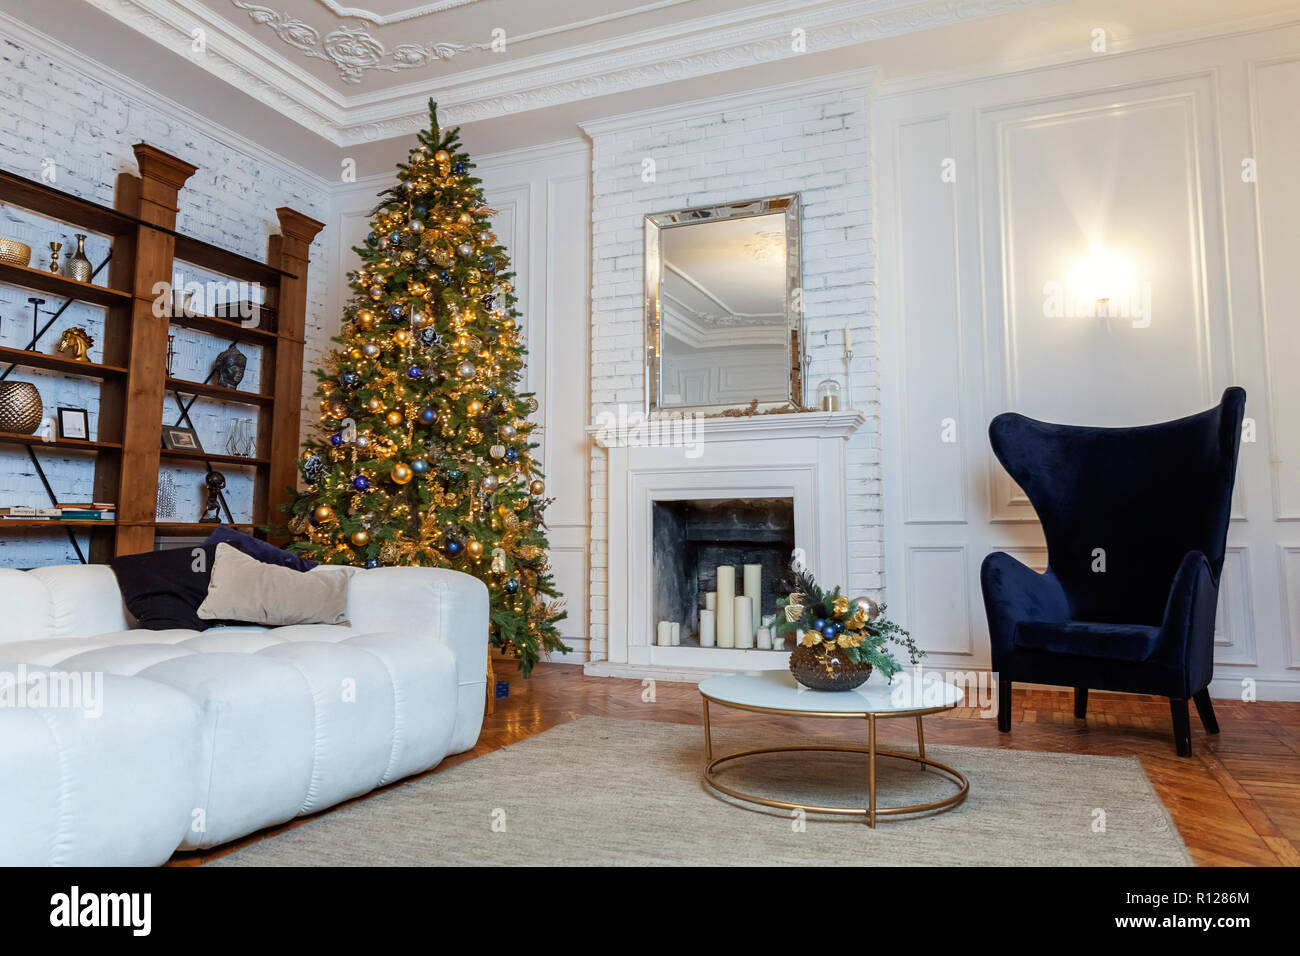 Classic Christmas Decorated Interior Room New Year Tree Christmas